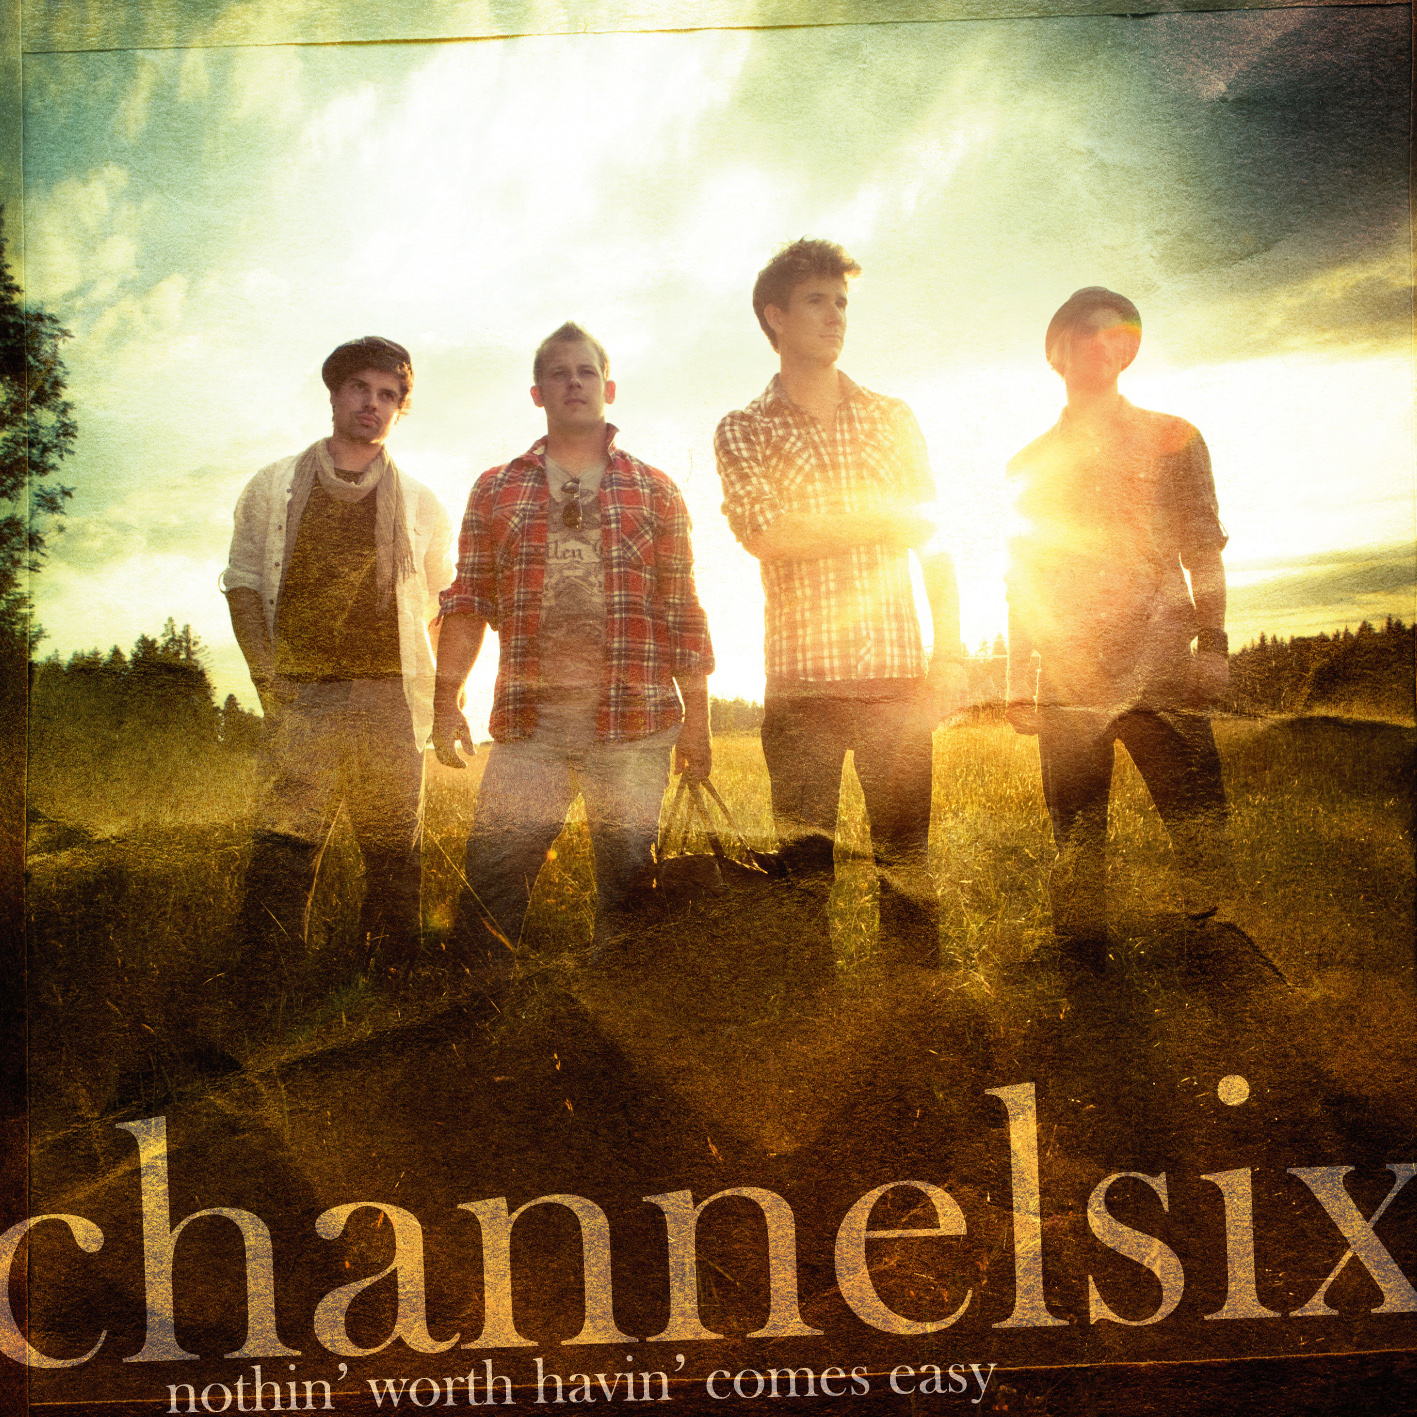 channelsix_albumcover